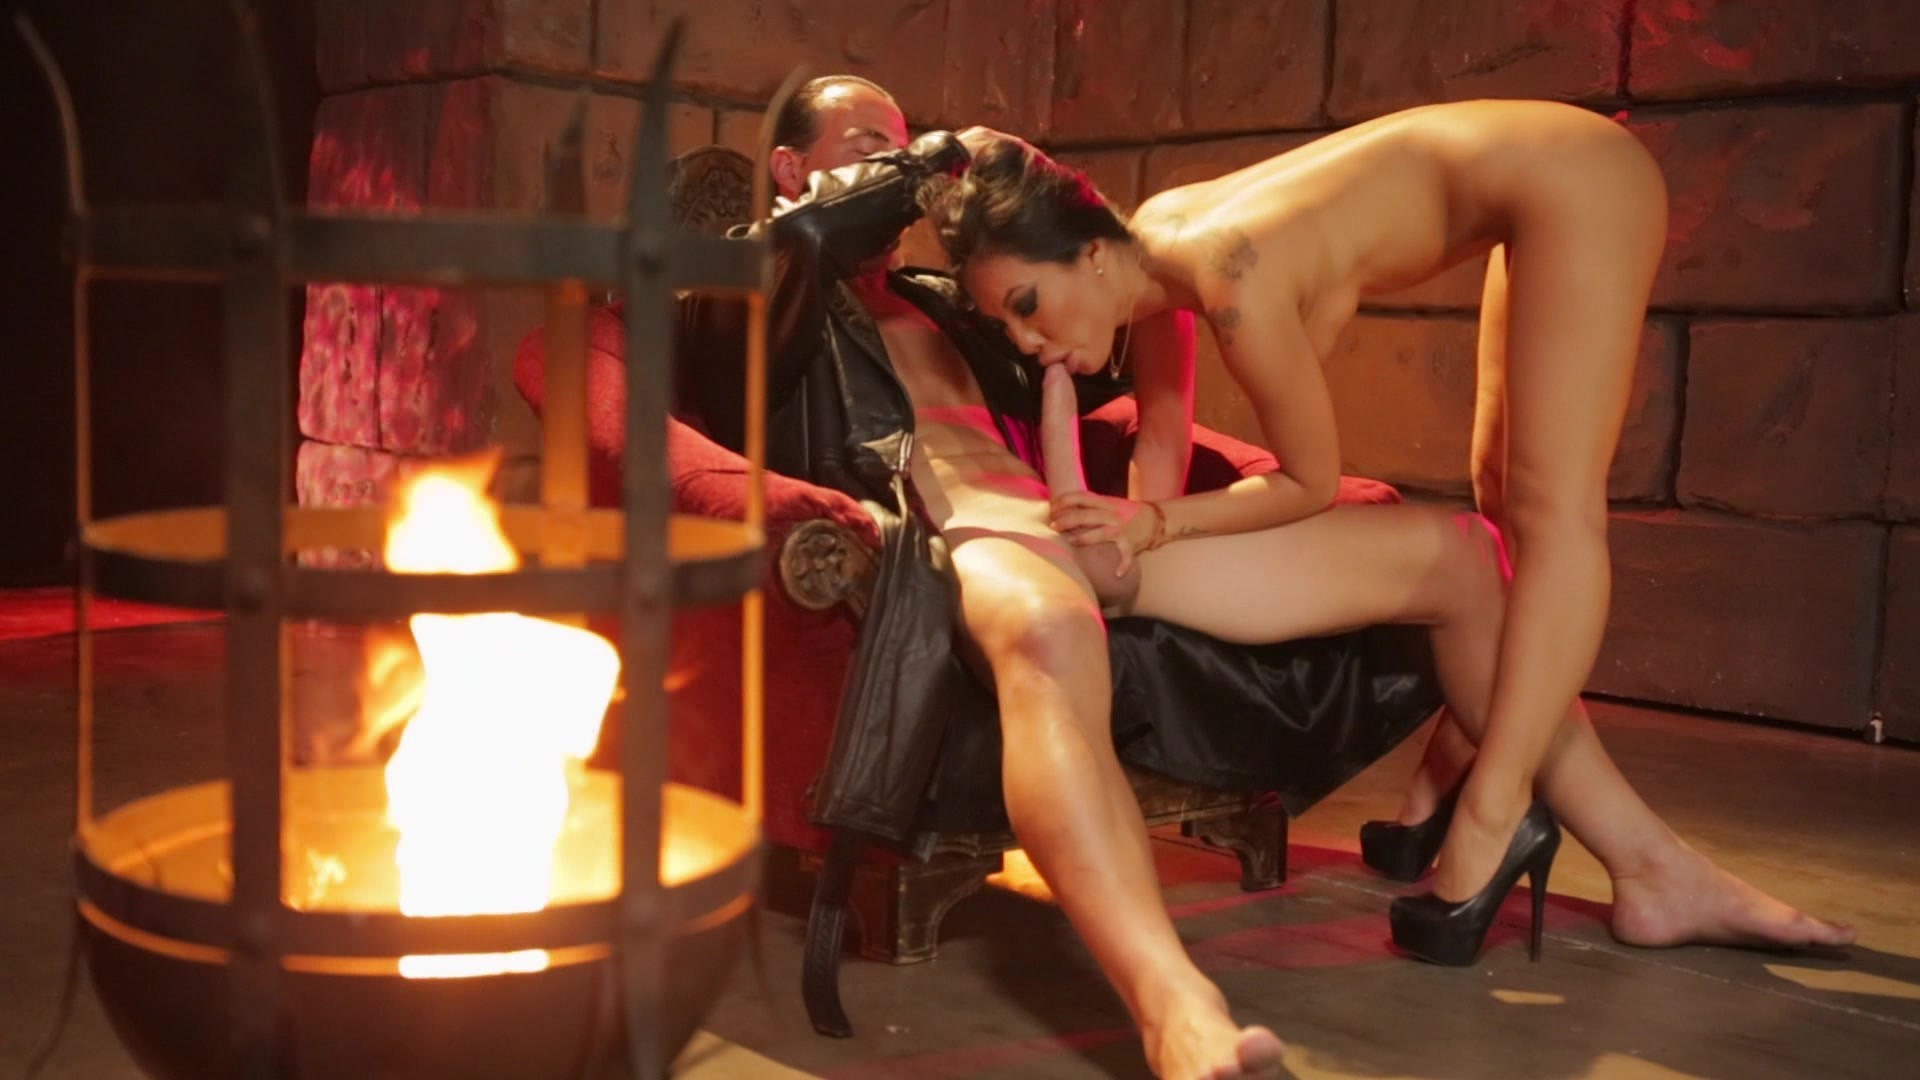 Scene with Asa Akira - image 3 out of 20